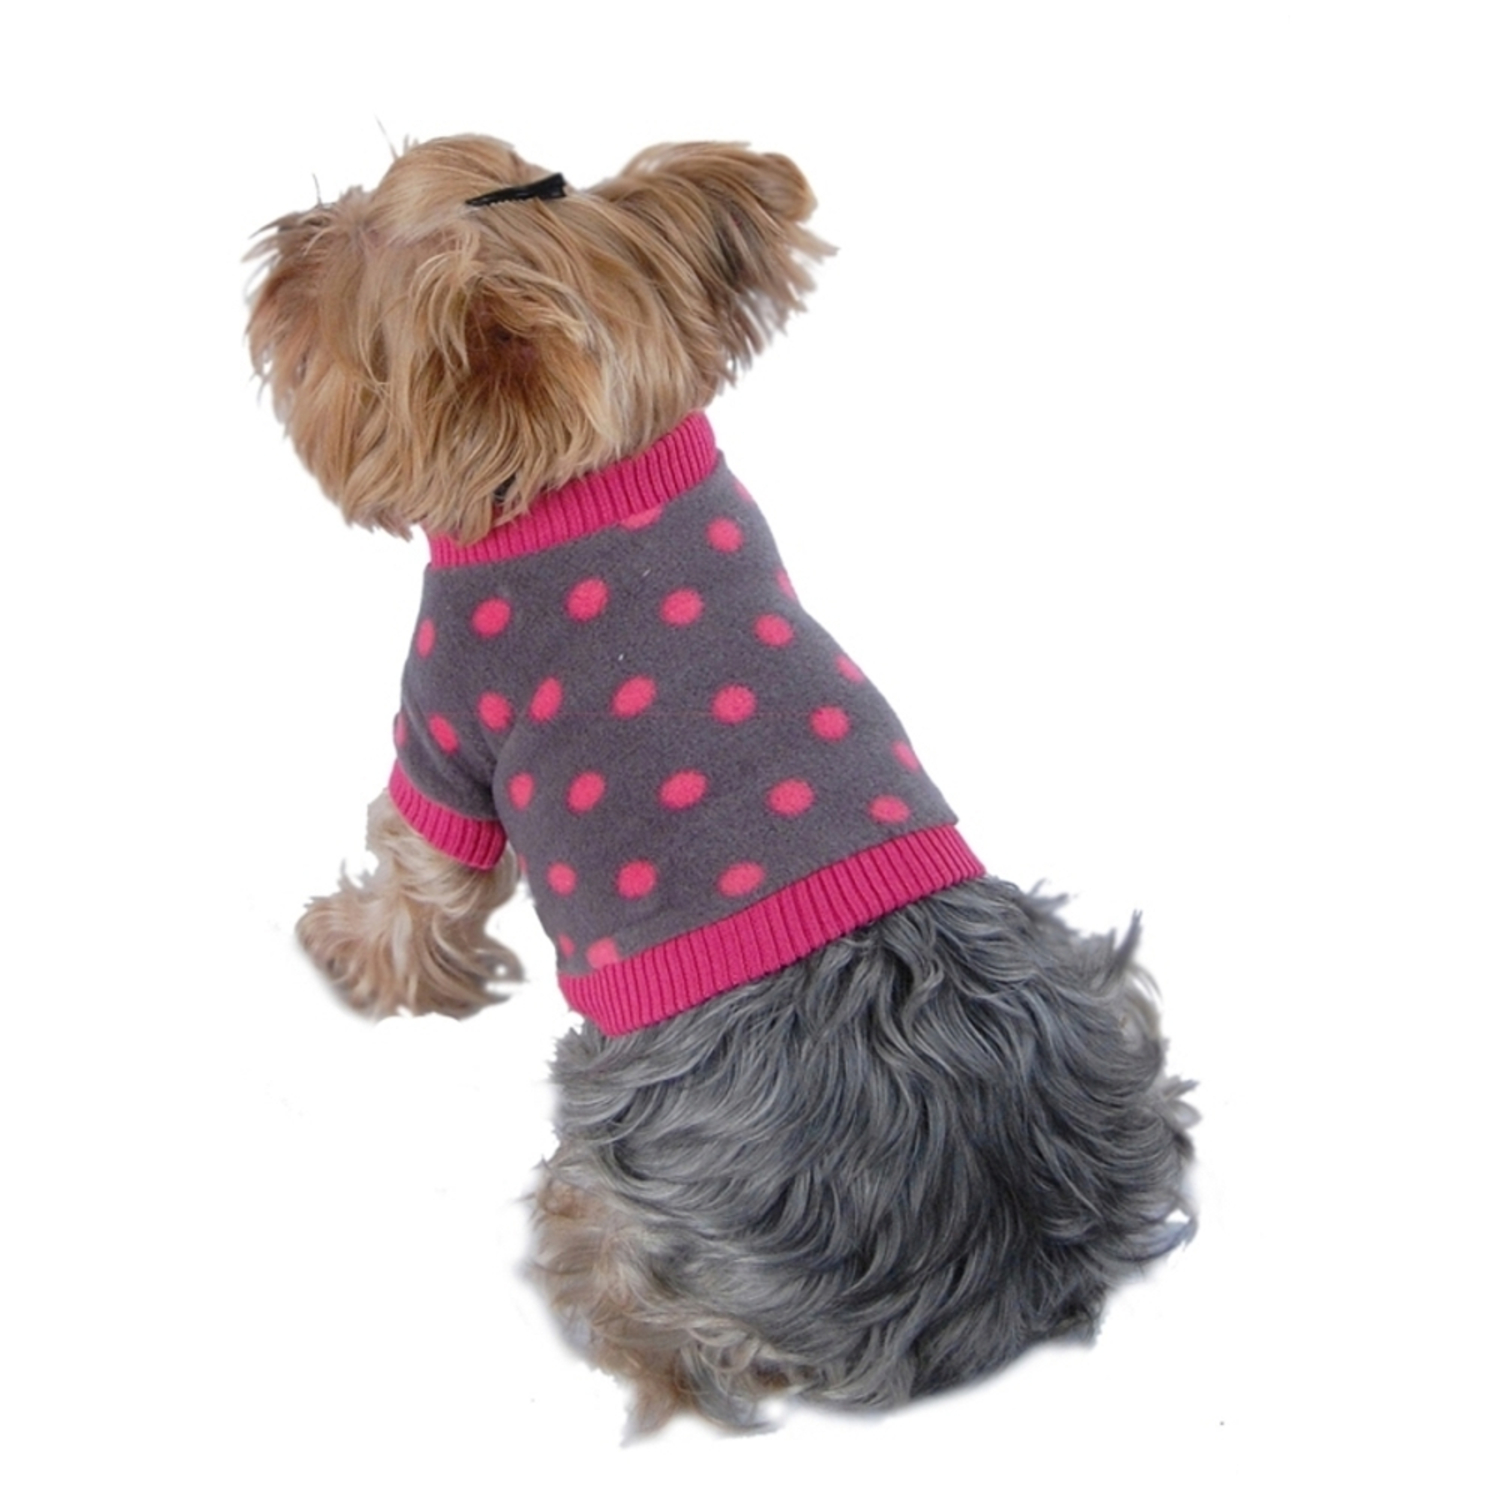 Pink Gray Polka Dot Soft Fleece Fabric Shirt For Dog - Small (Gift for Pet)